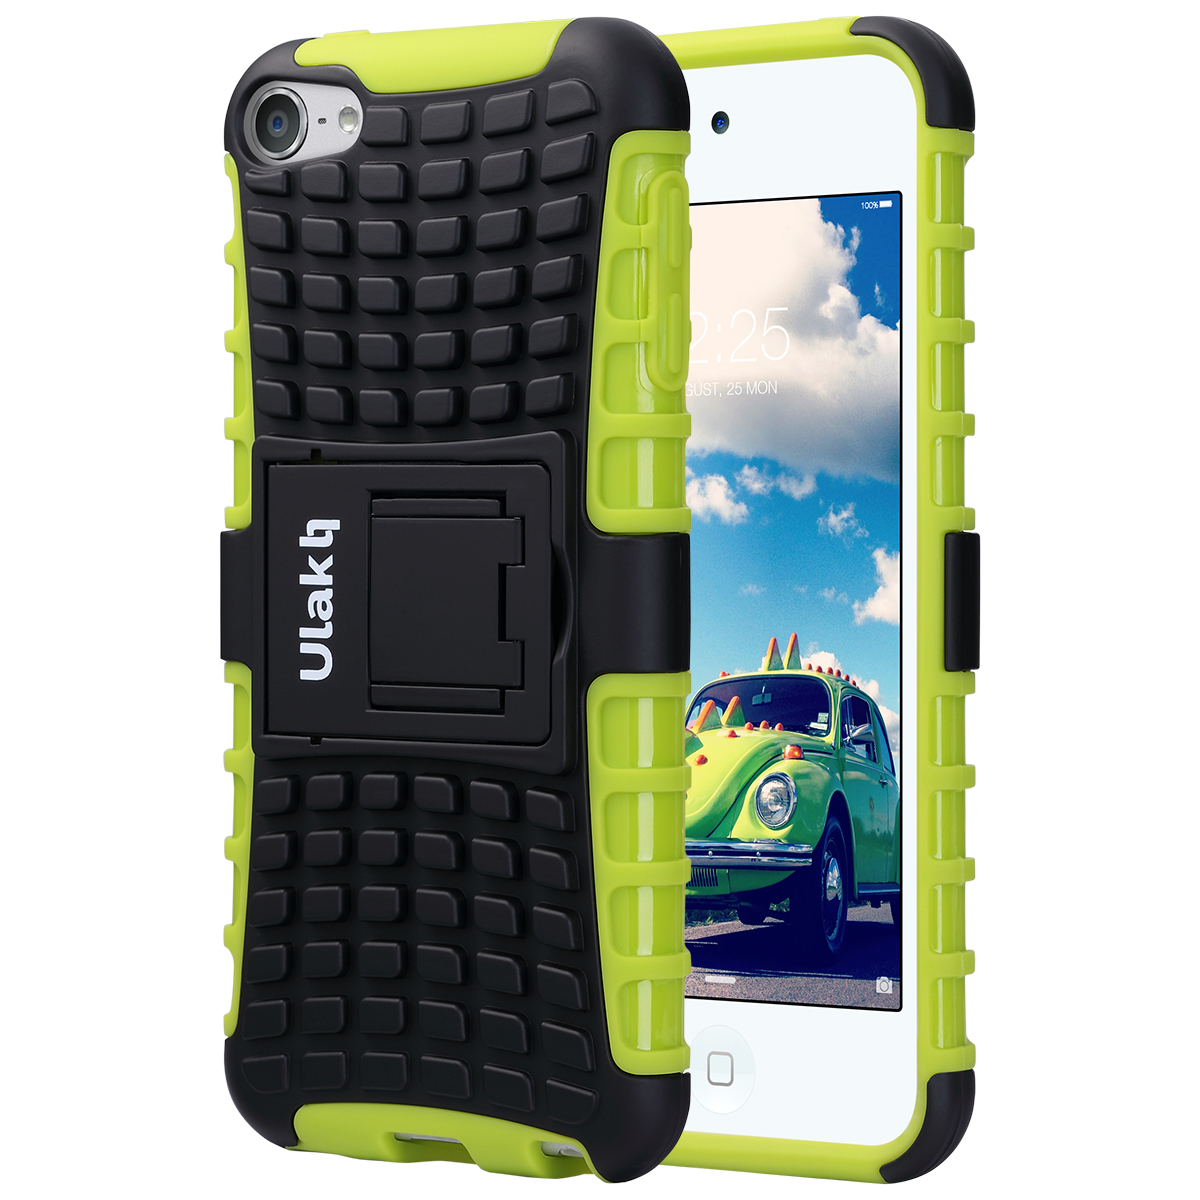 Hybrid-Hard-Protective-Silicon-TPU-Case-for-Apple-iPod-Touch-5-6th-Generation thumbnail 29